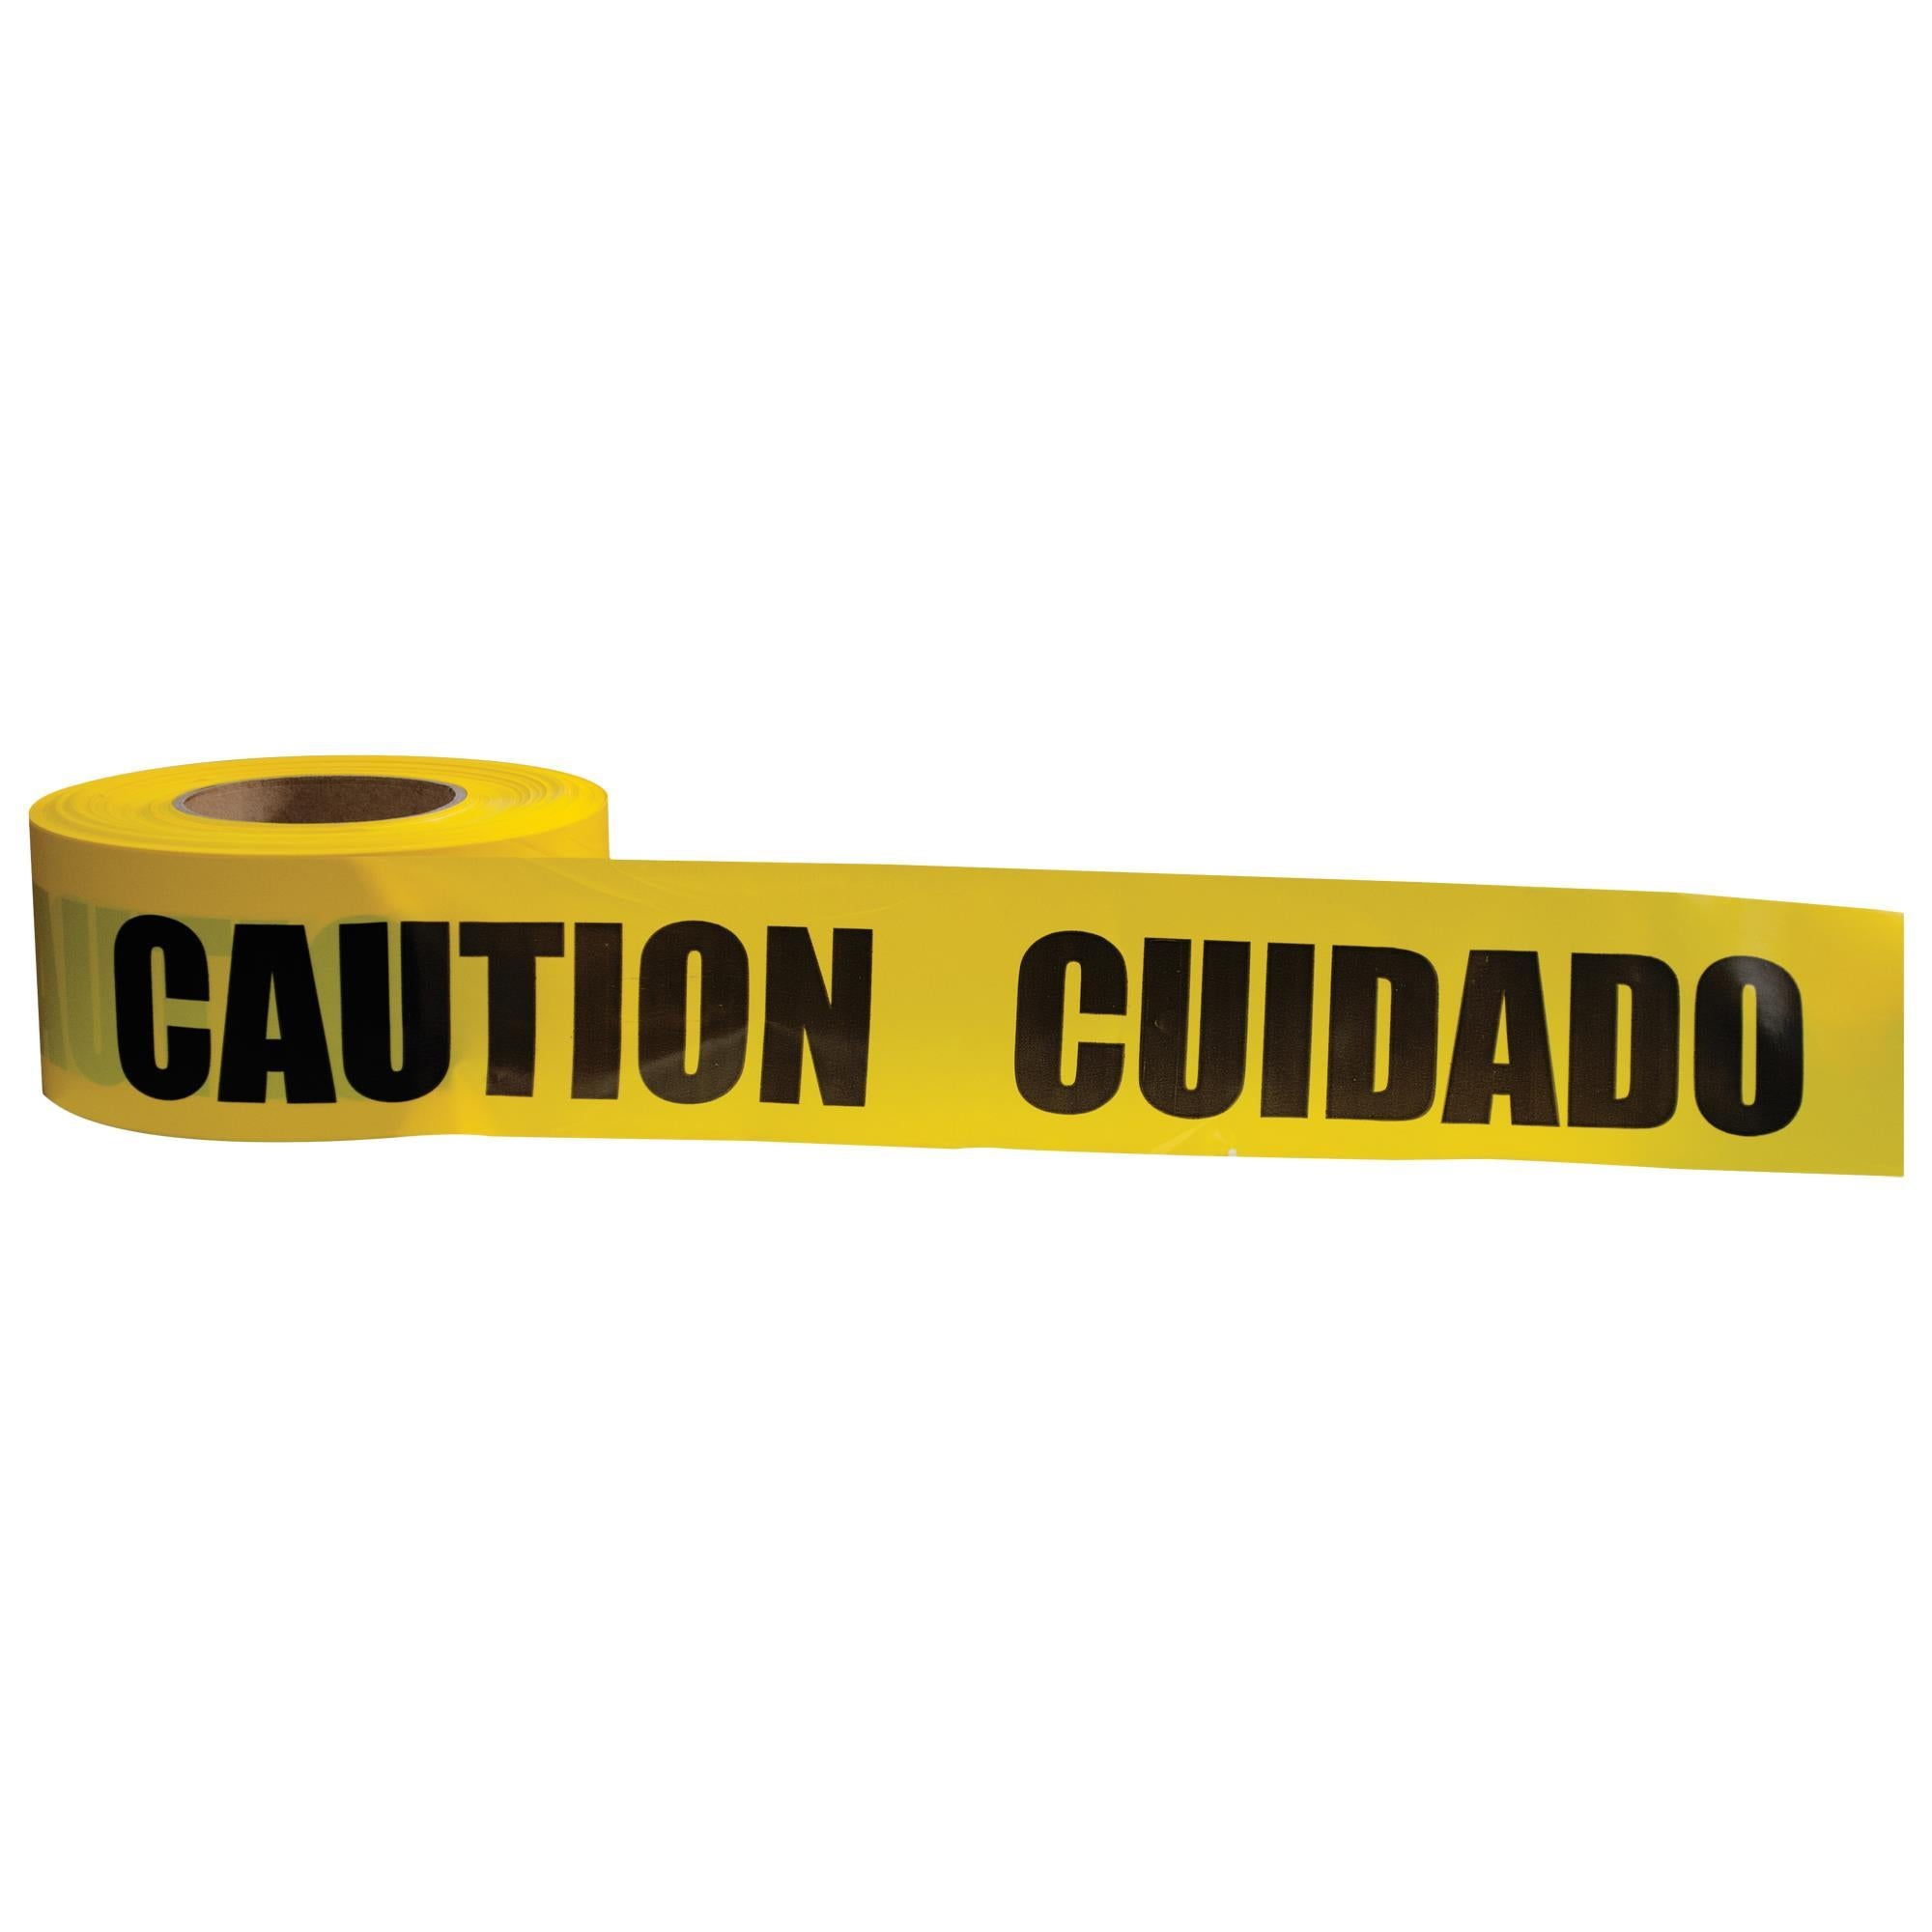 13752 Caution/Cuidado Tape (Sold by Case of 10 rolls)